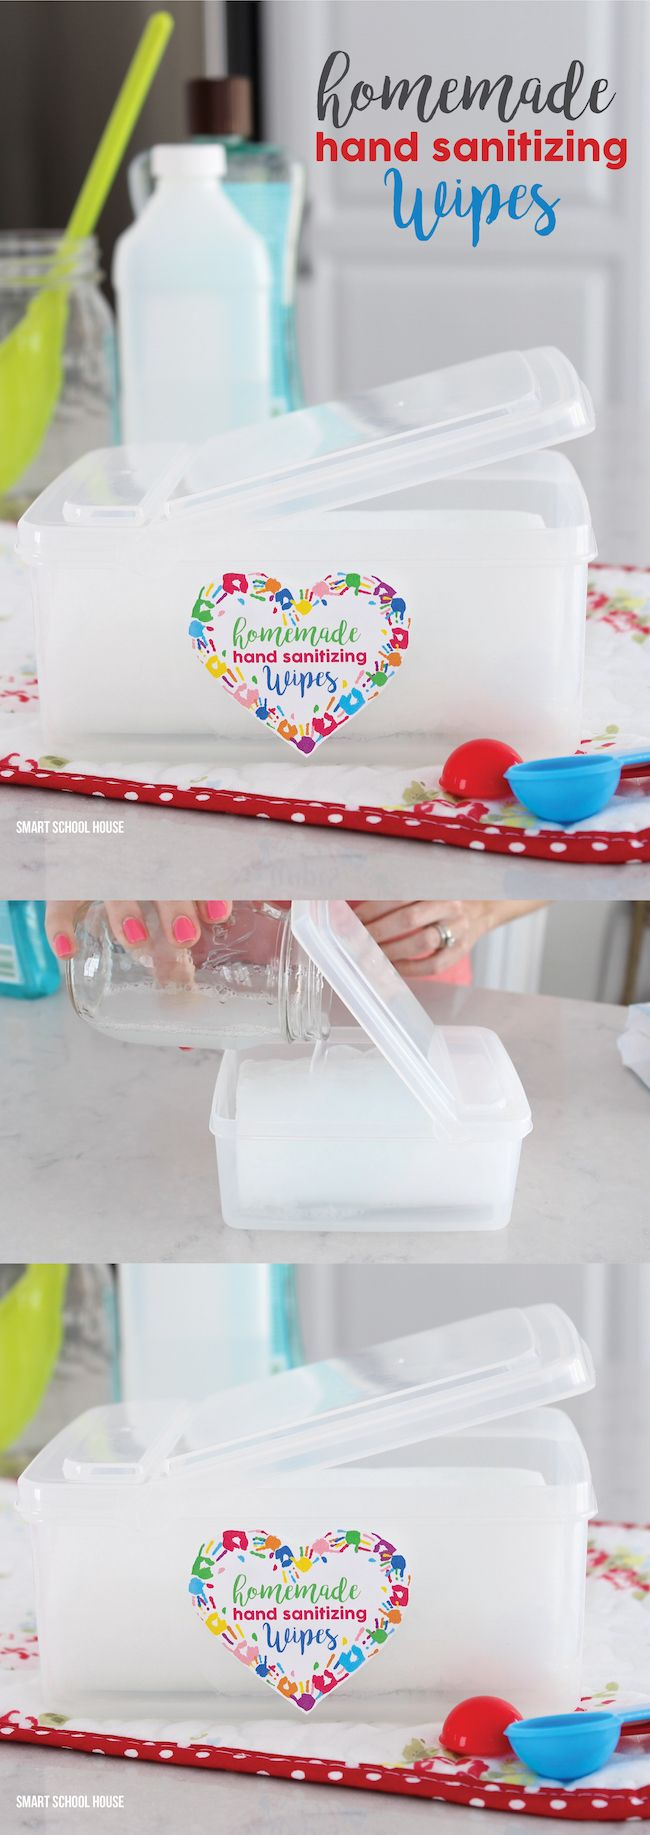 How to Make Hand Sanitizing Wipes at Home Homemade wipes